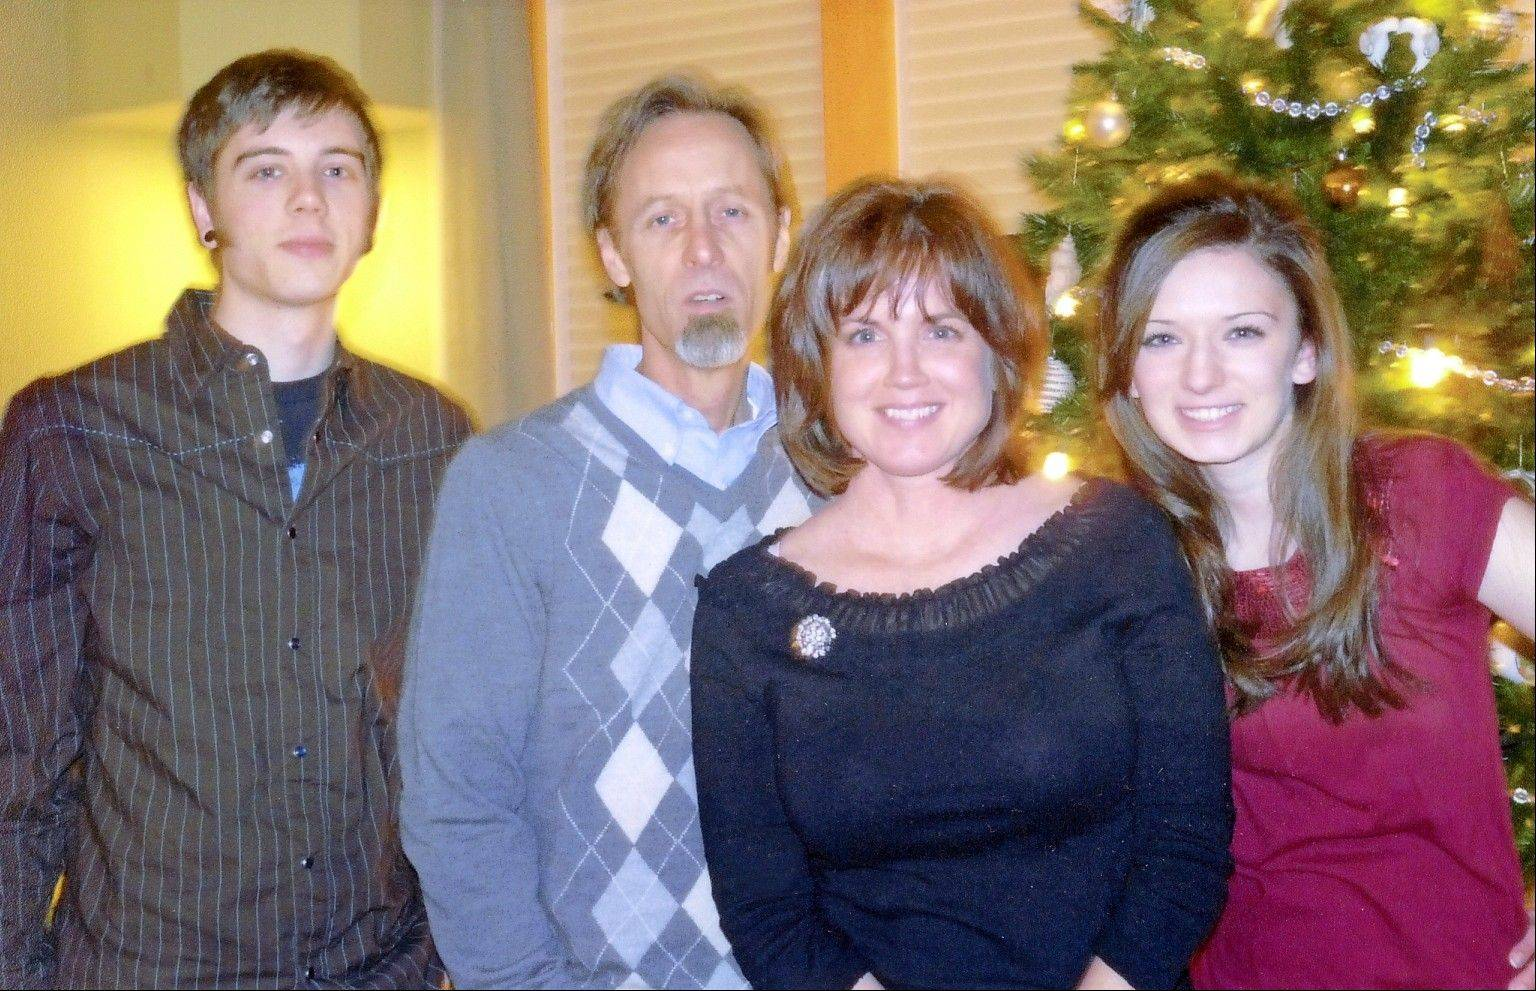 Wally Preissing, second from left, pictured with his family, from left, son, Jack, 21, wife, Theresa, and daughter, Eva, 19. Family members are hosting a benefit Saturday in Arlington Heights for Preissing, who's battling emphysema and needs a lung transplant.